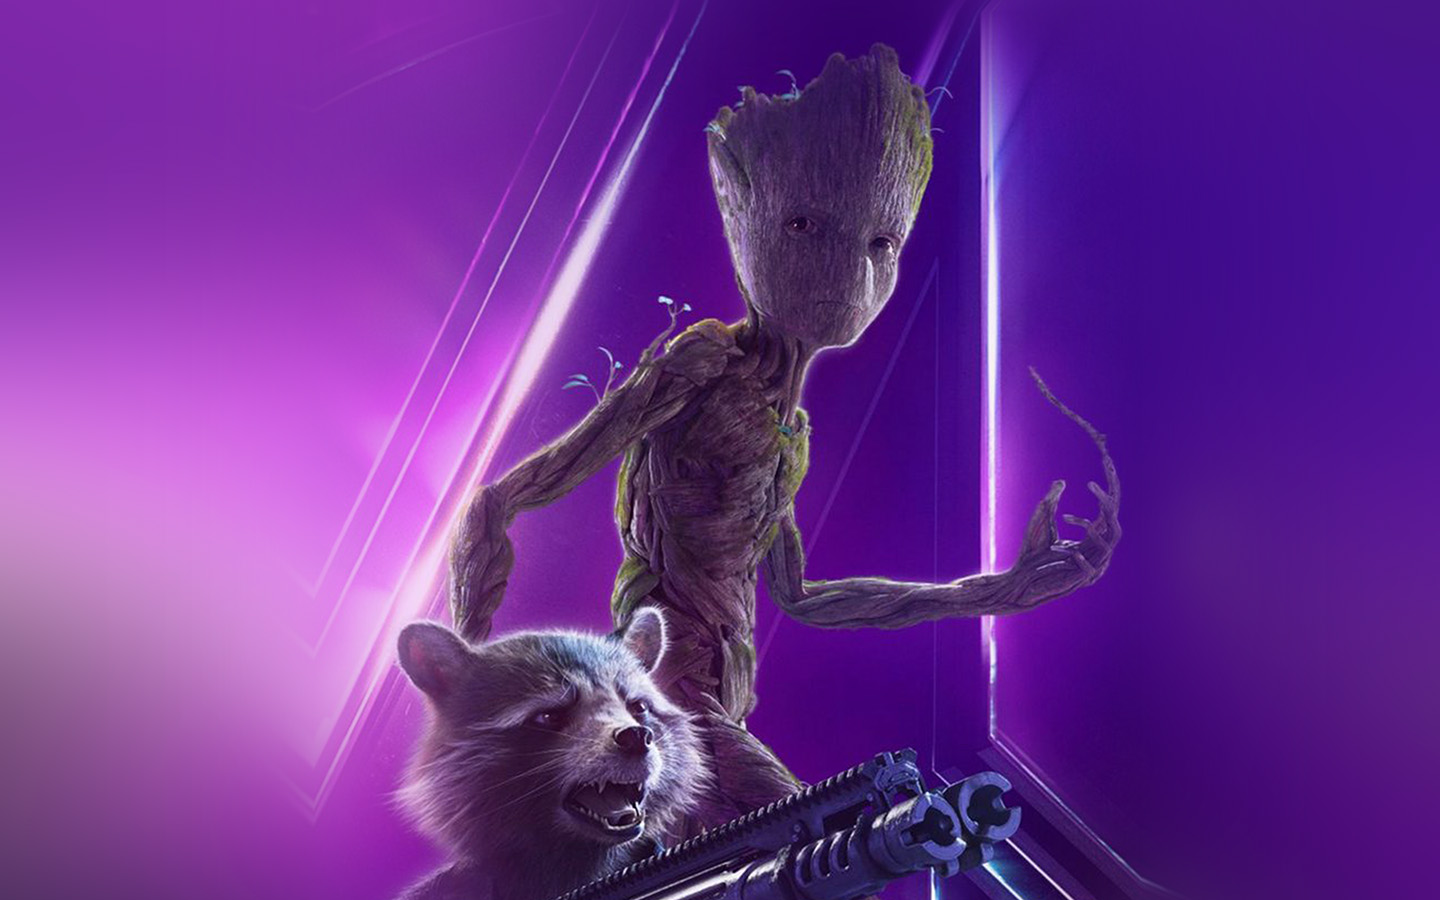 Google Image Cute Wallpapers Be87 Groot Rocket Marvel Hero Film Avengers Art Wallpaper